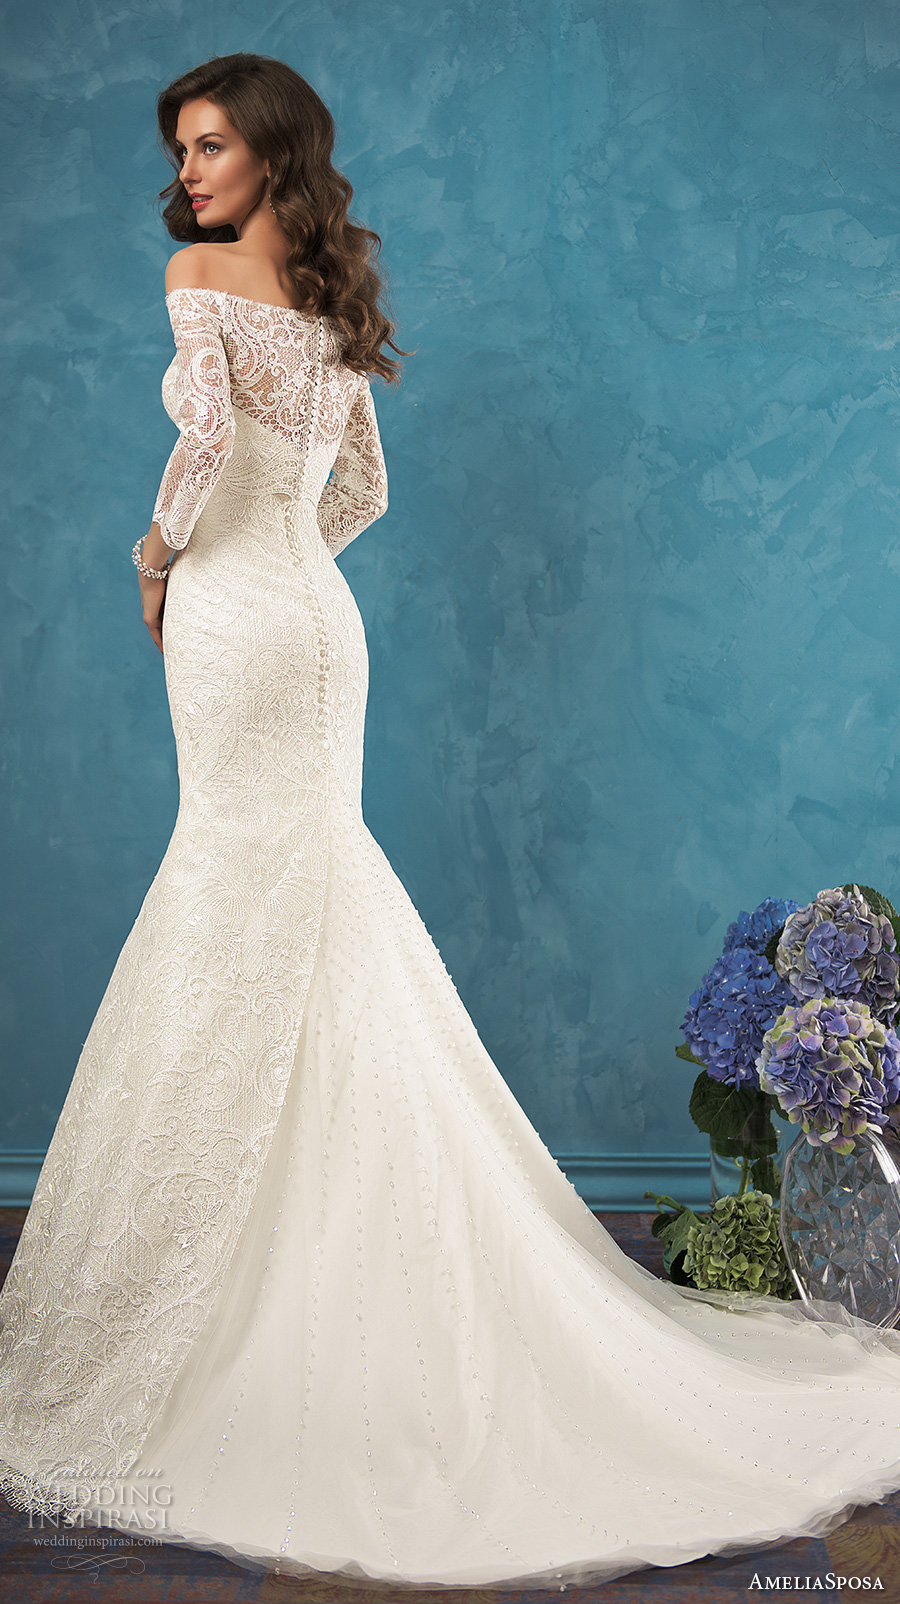 Amelia Sposa 2017 Wedding Dresses Wedding Inspirasi